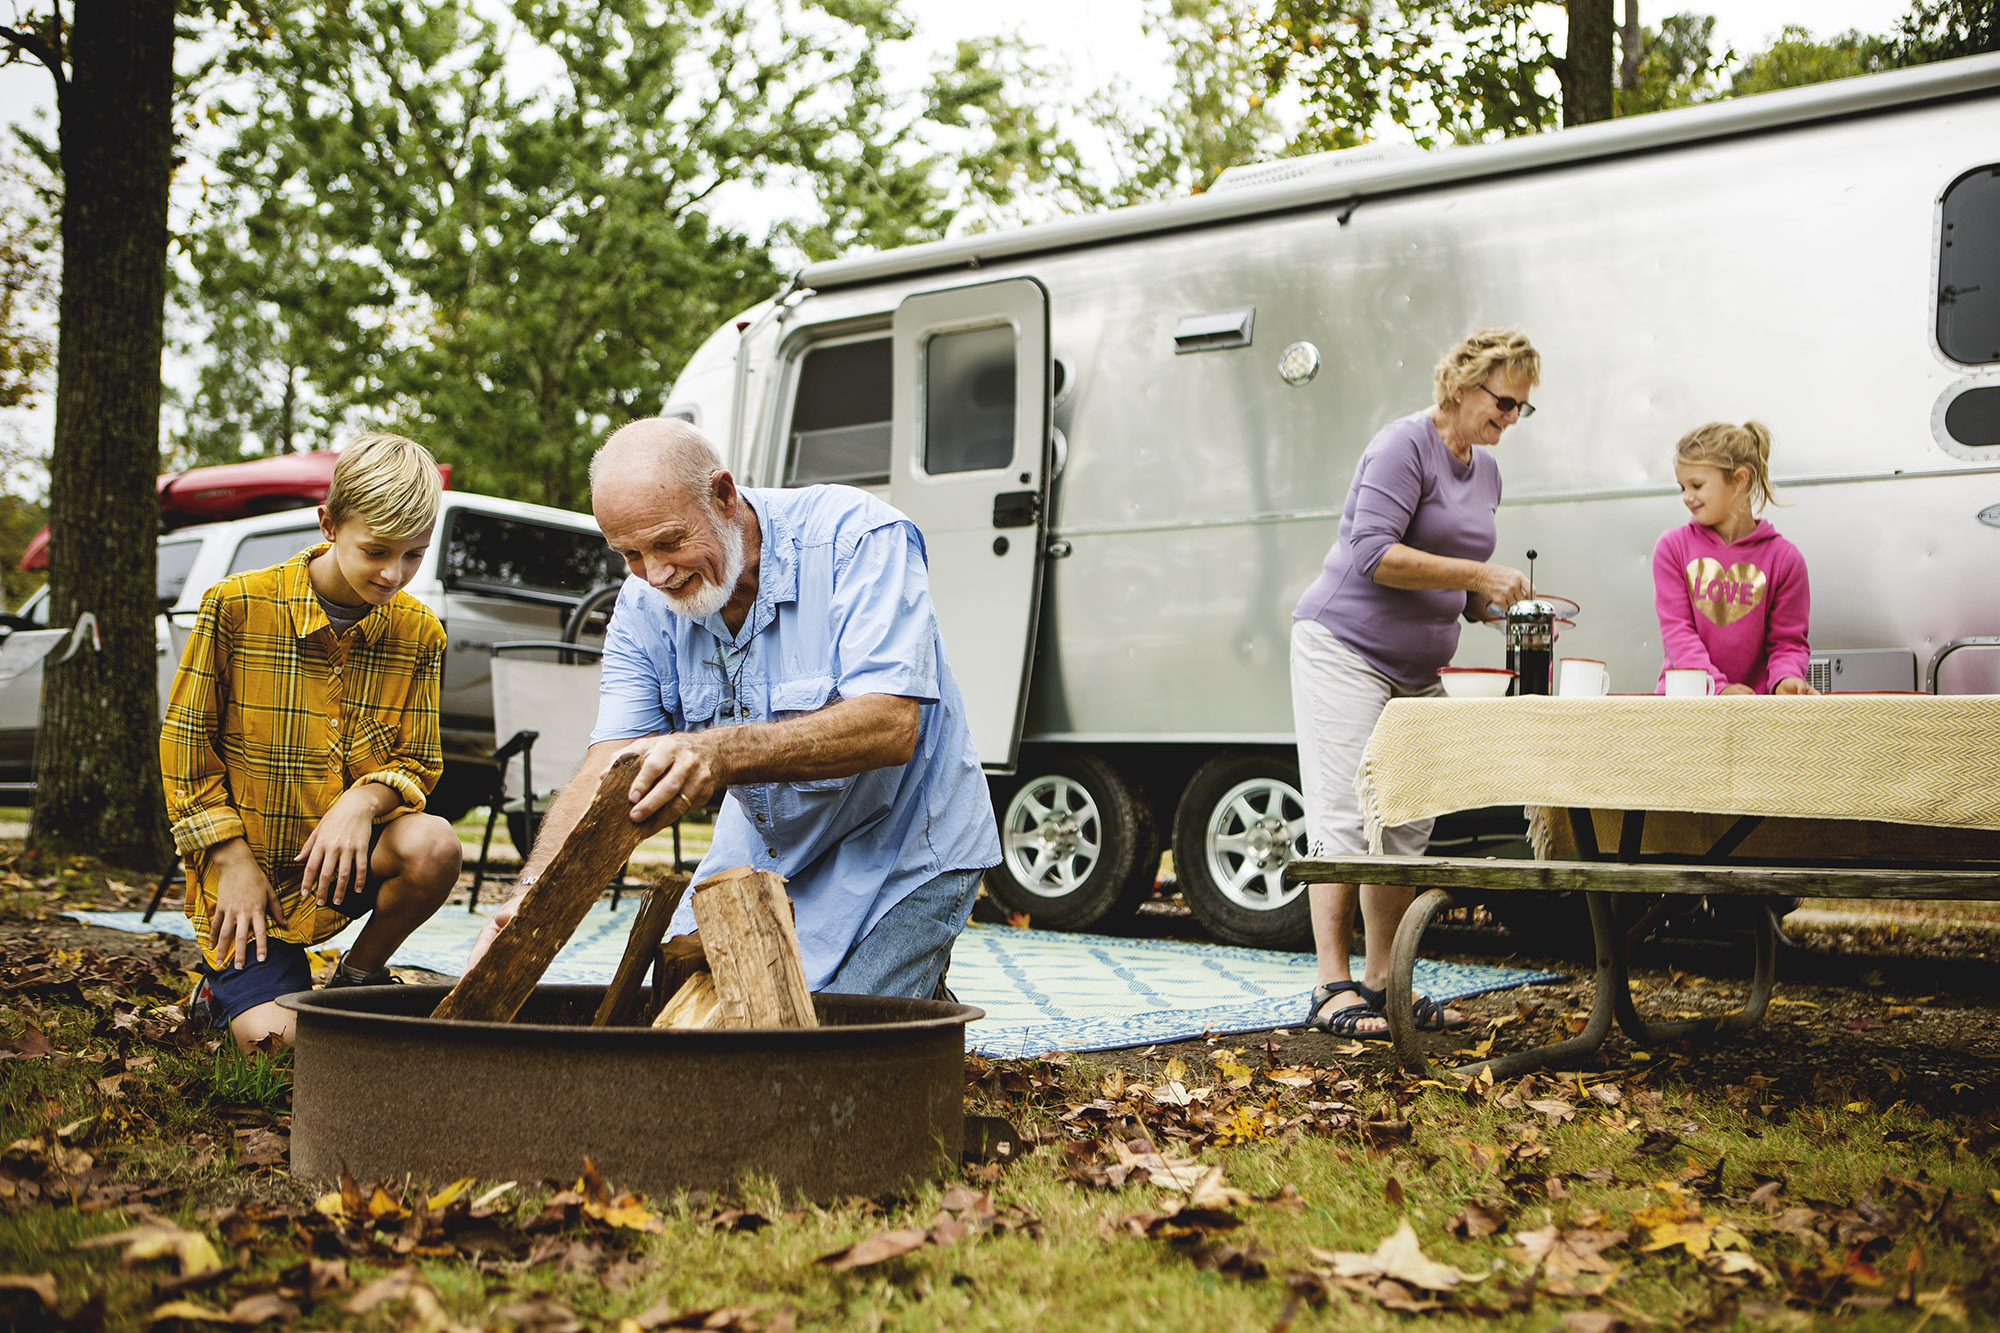 Get your RV delivered to a KOA site